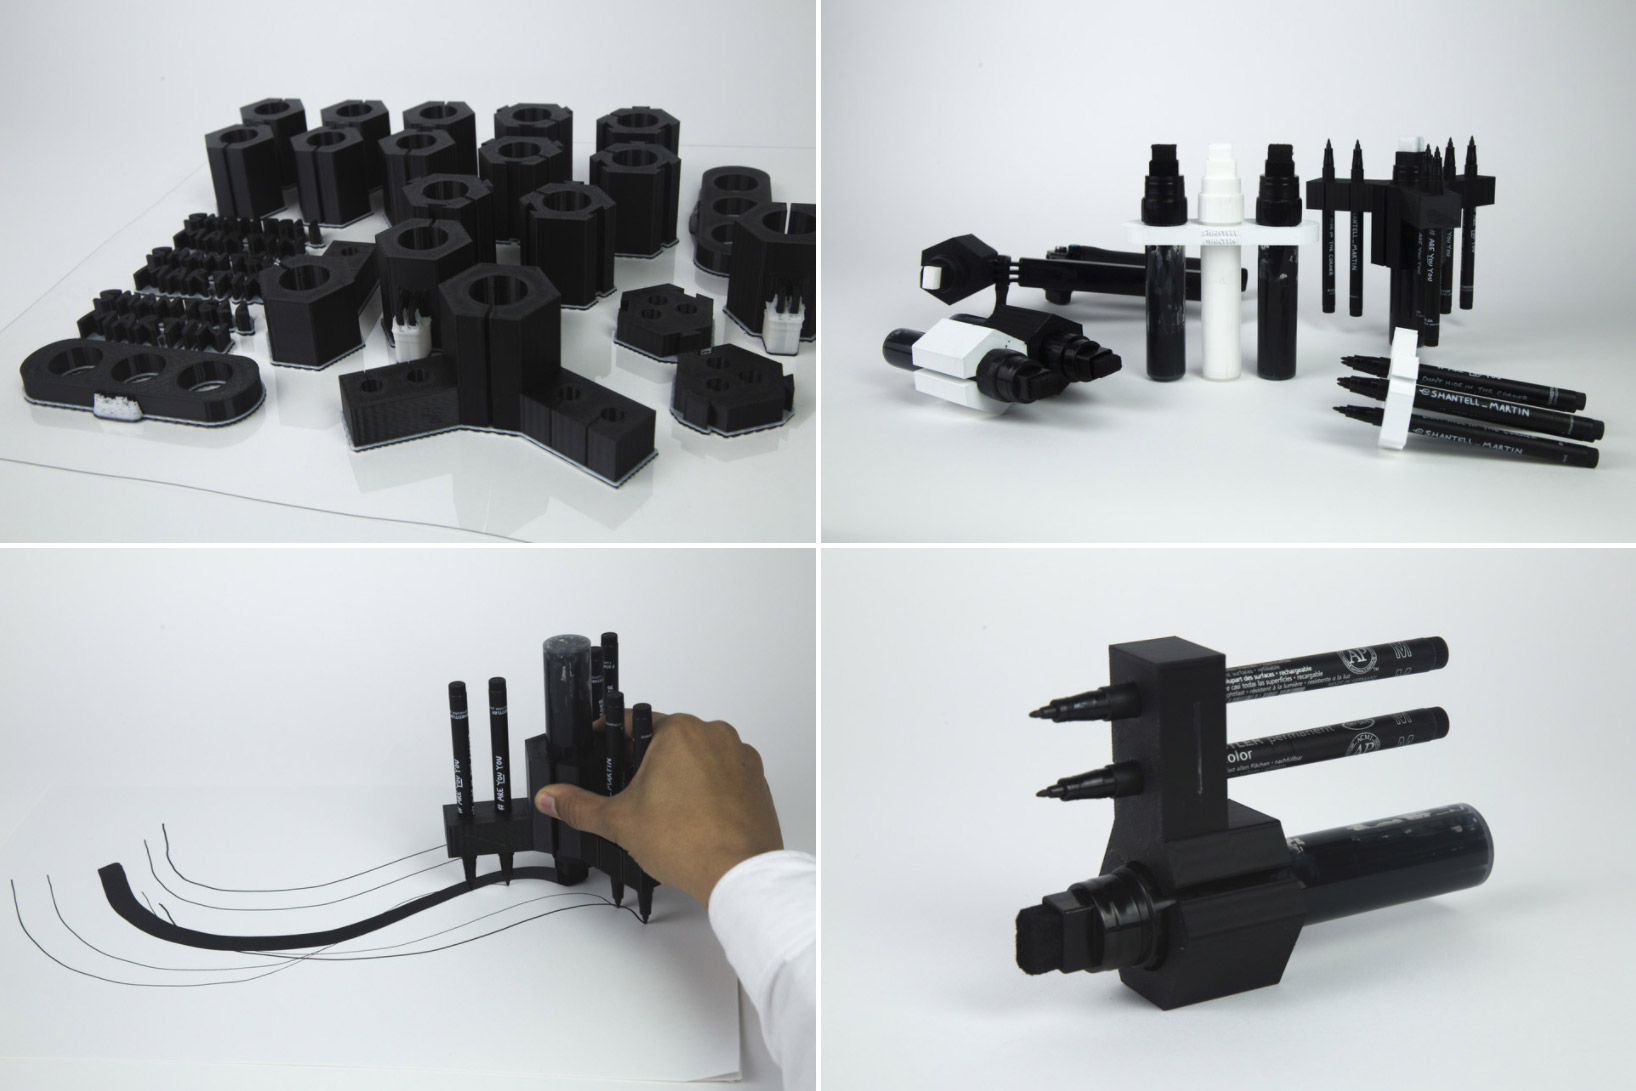 3D Printed Drawing Tools by Shantell Martin